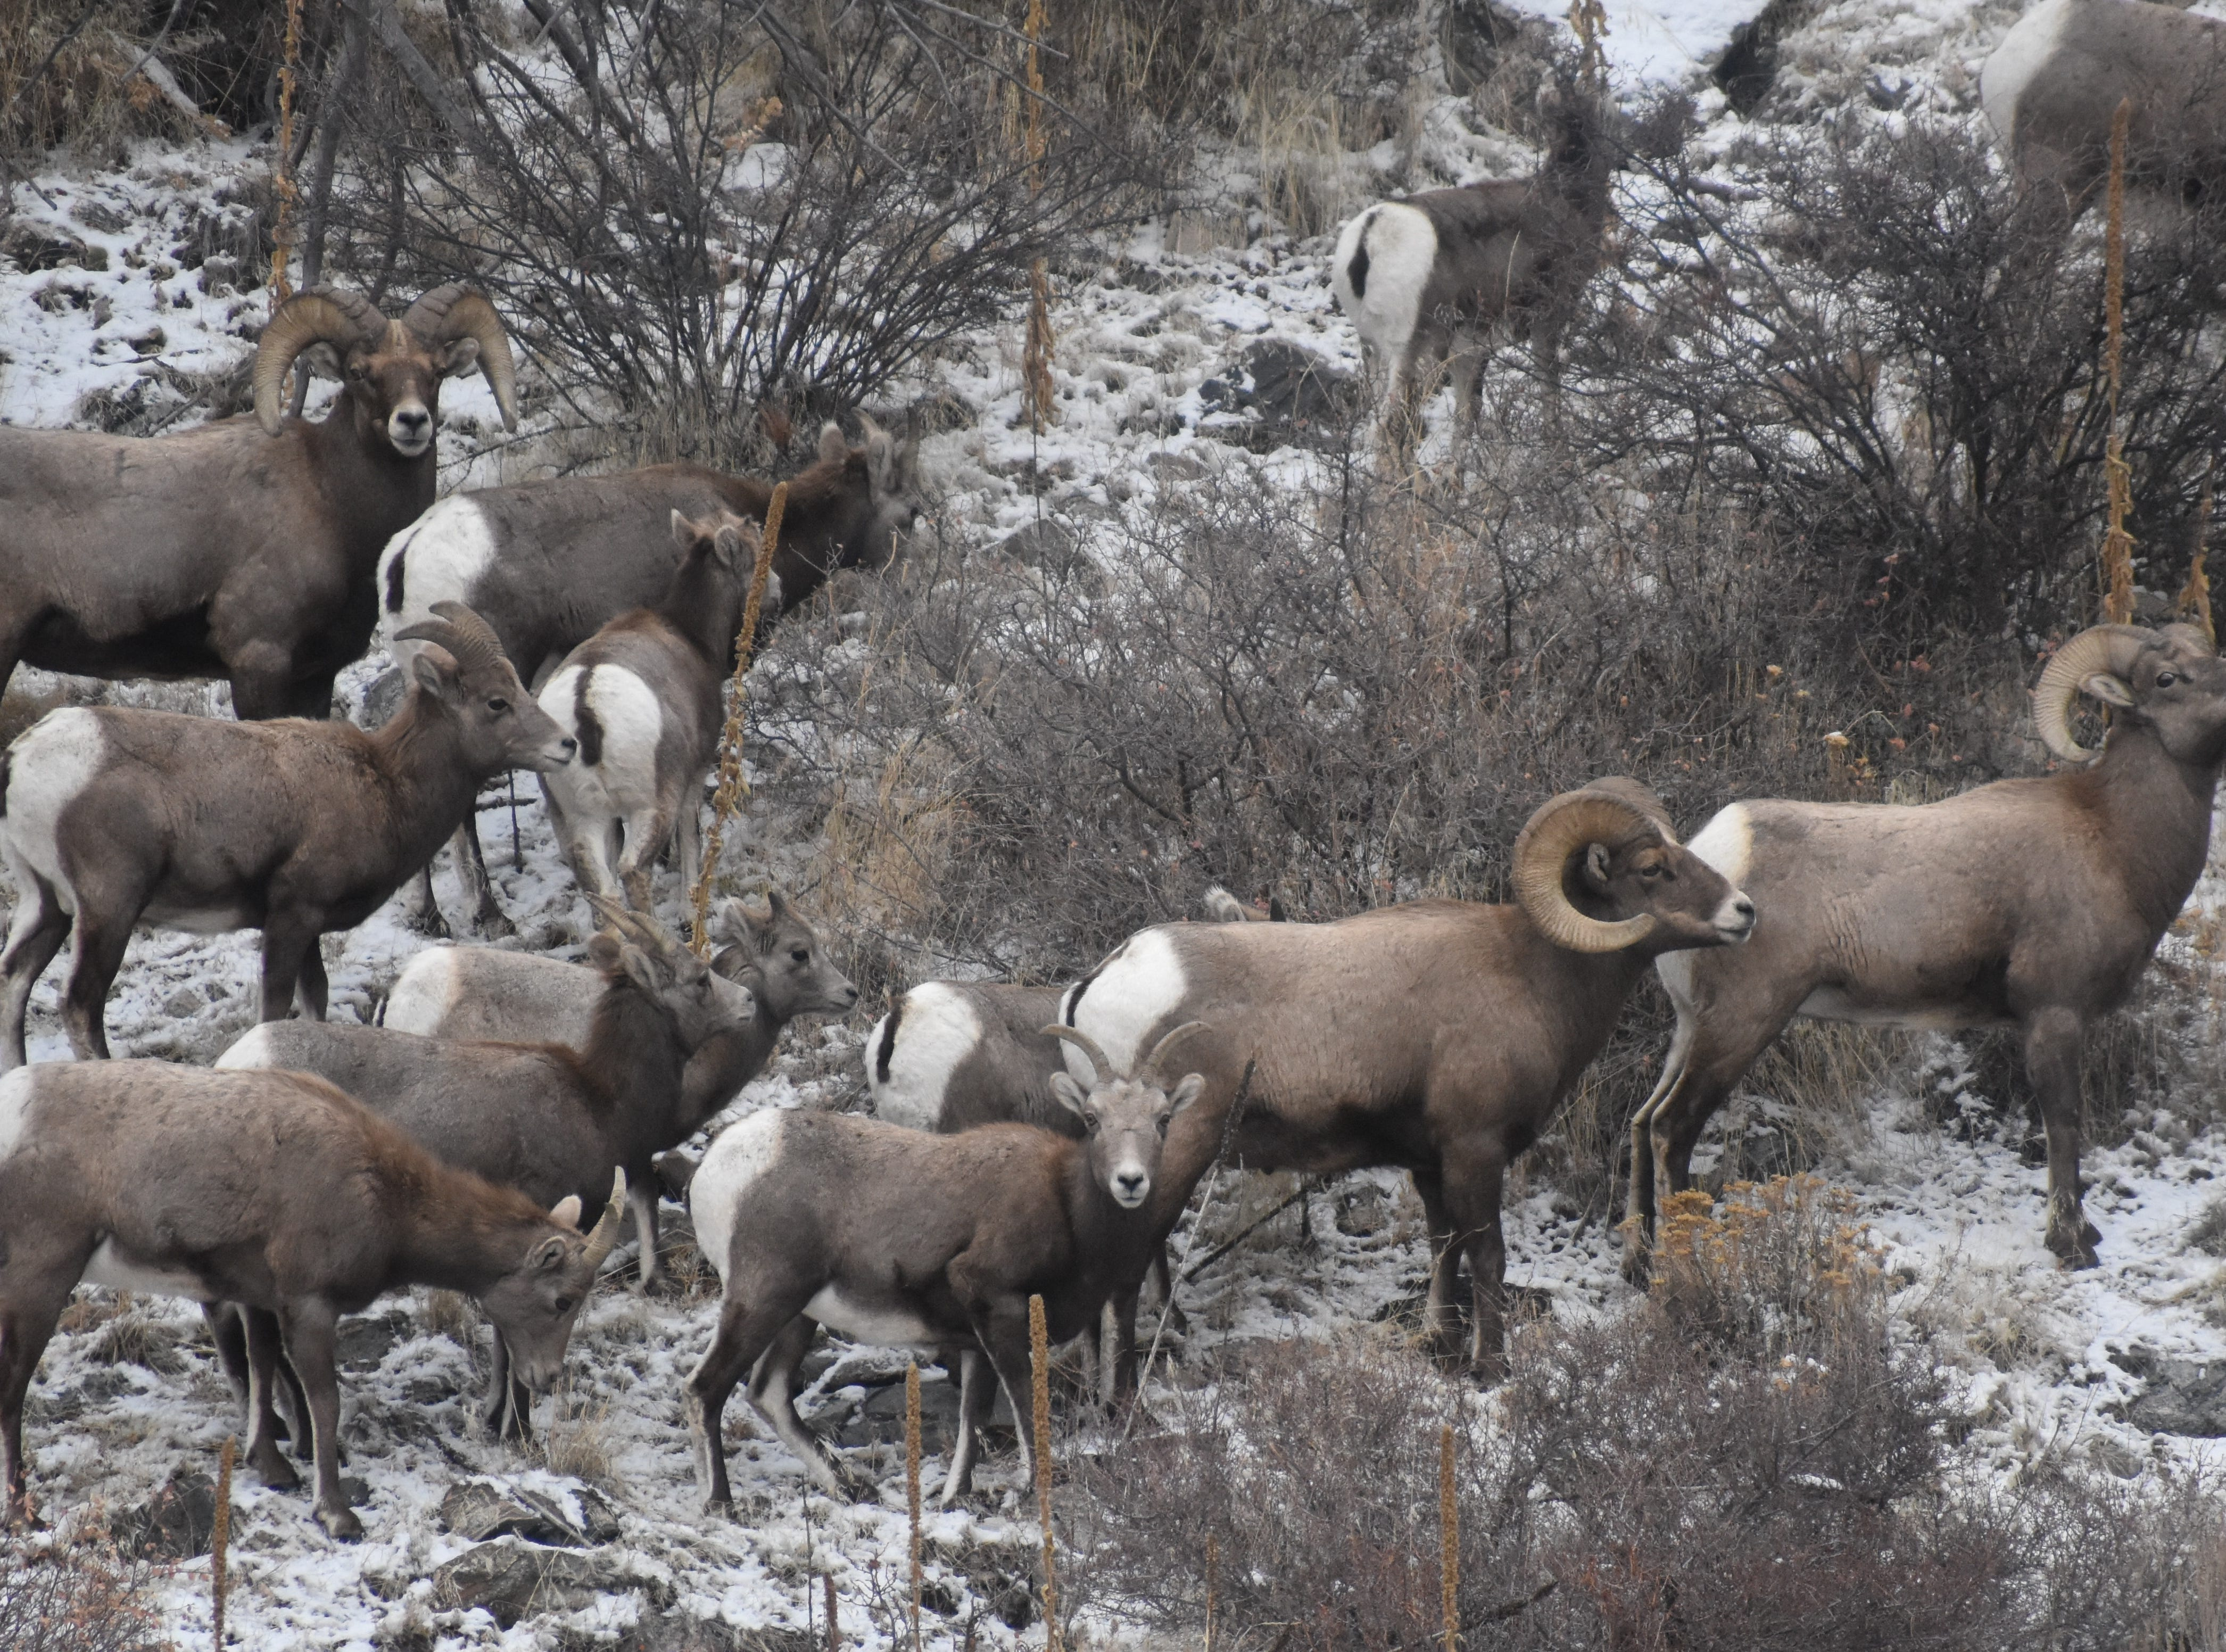 A herd of bighorn sheep roam the mountainside near Big Bend Campground in the Poudre Canyon.